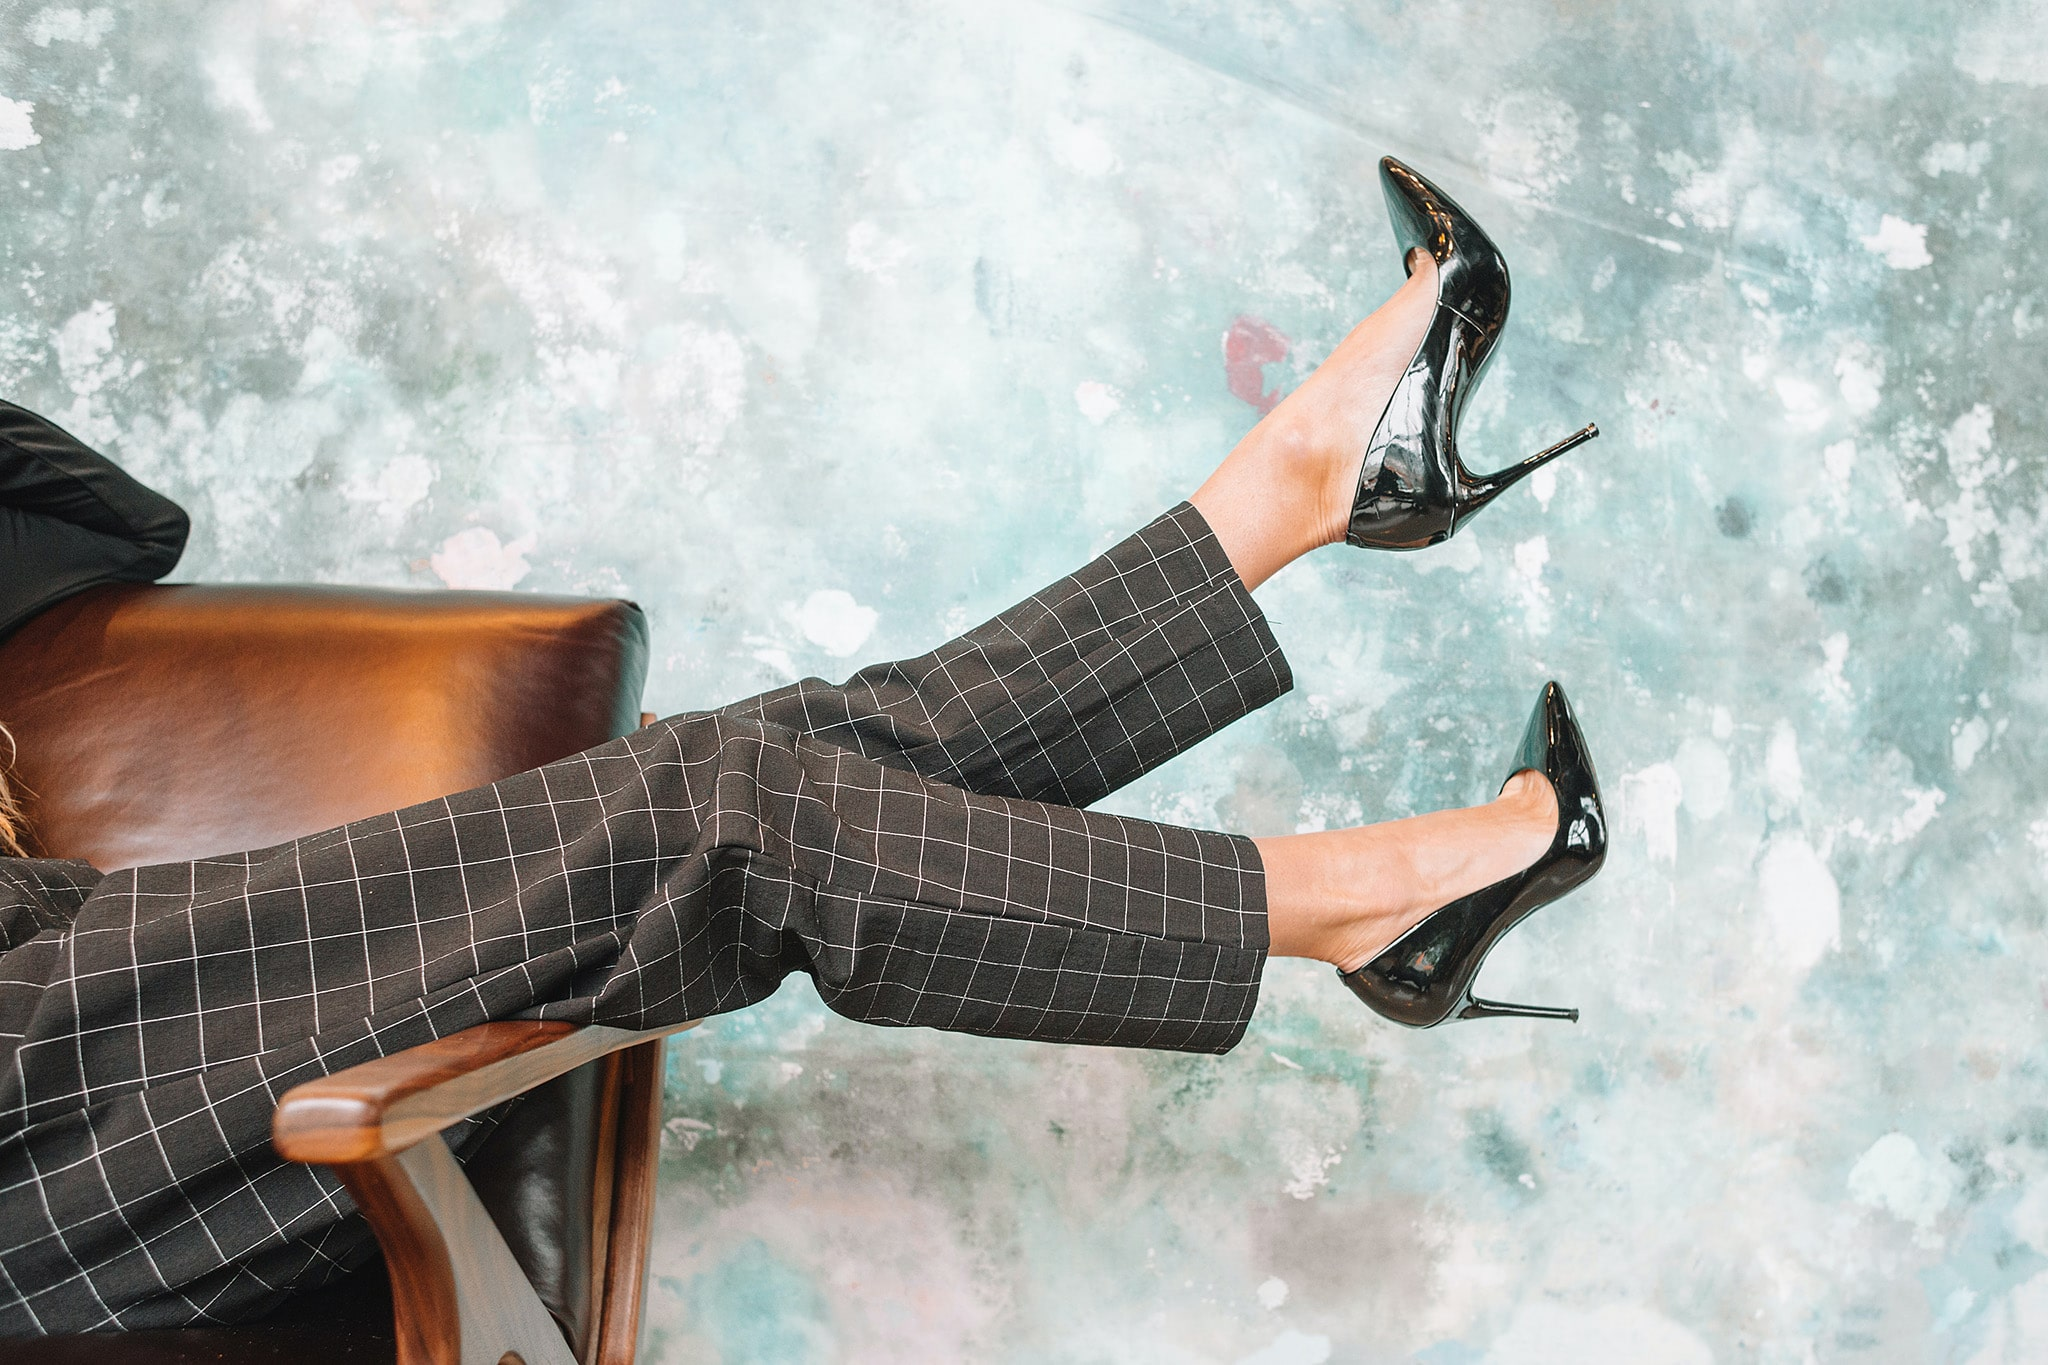 A woman is sitting in a brown leather chair out of frame while her legs extend into frame showing brown checkered pants and shiny black patent lather high heels, illustrating the gender norms persistent in posteminist narratives about female leaders